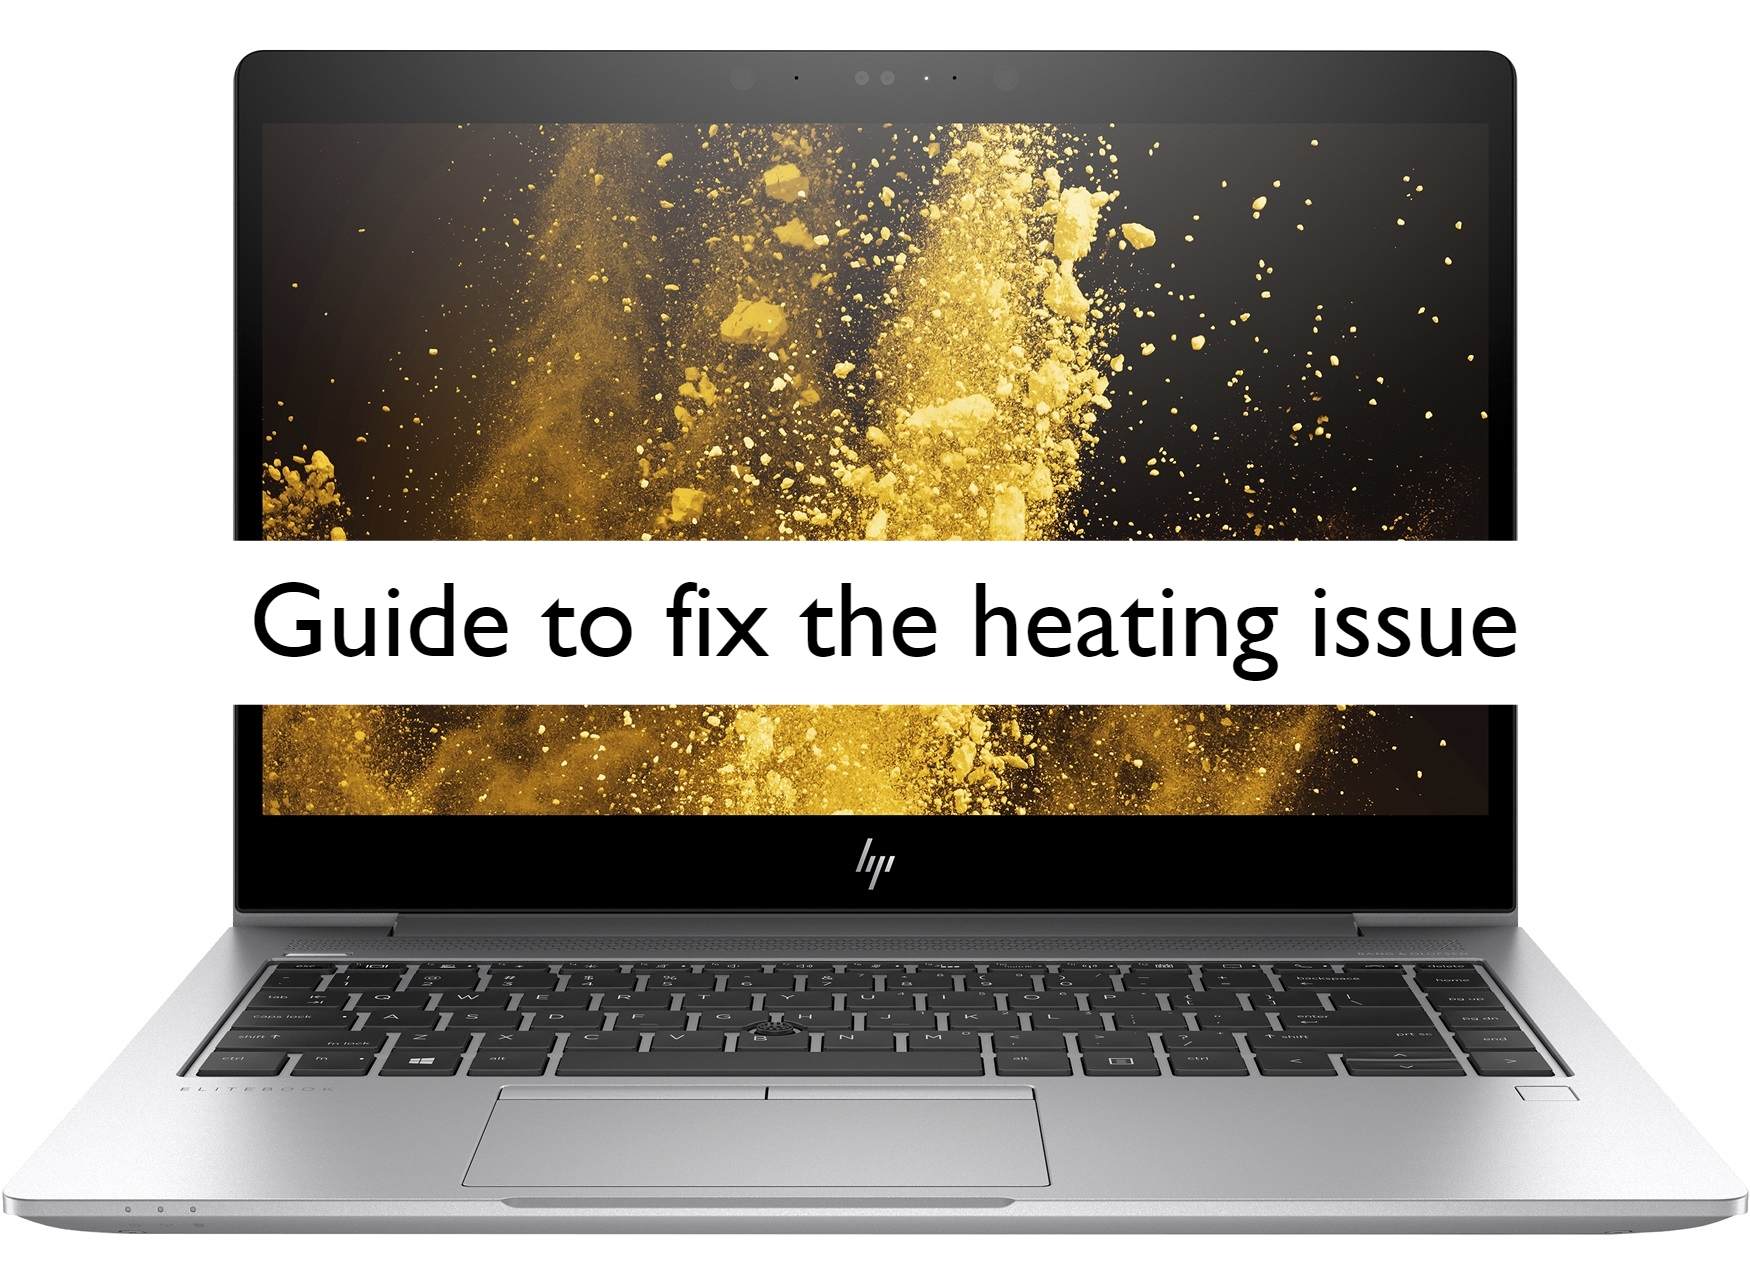 HP Elitebook 840 overheating